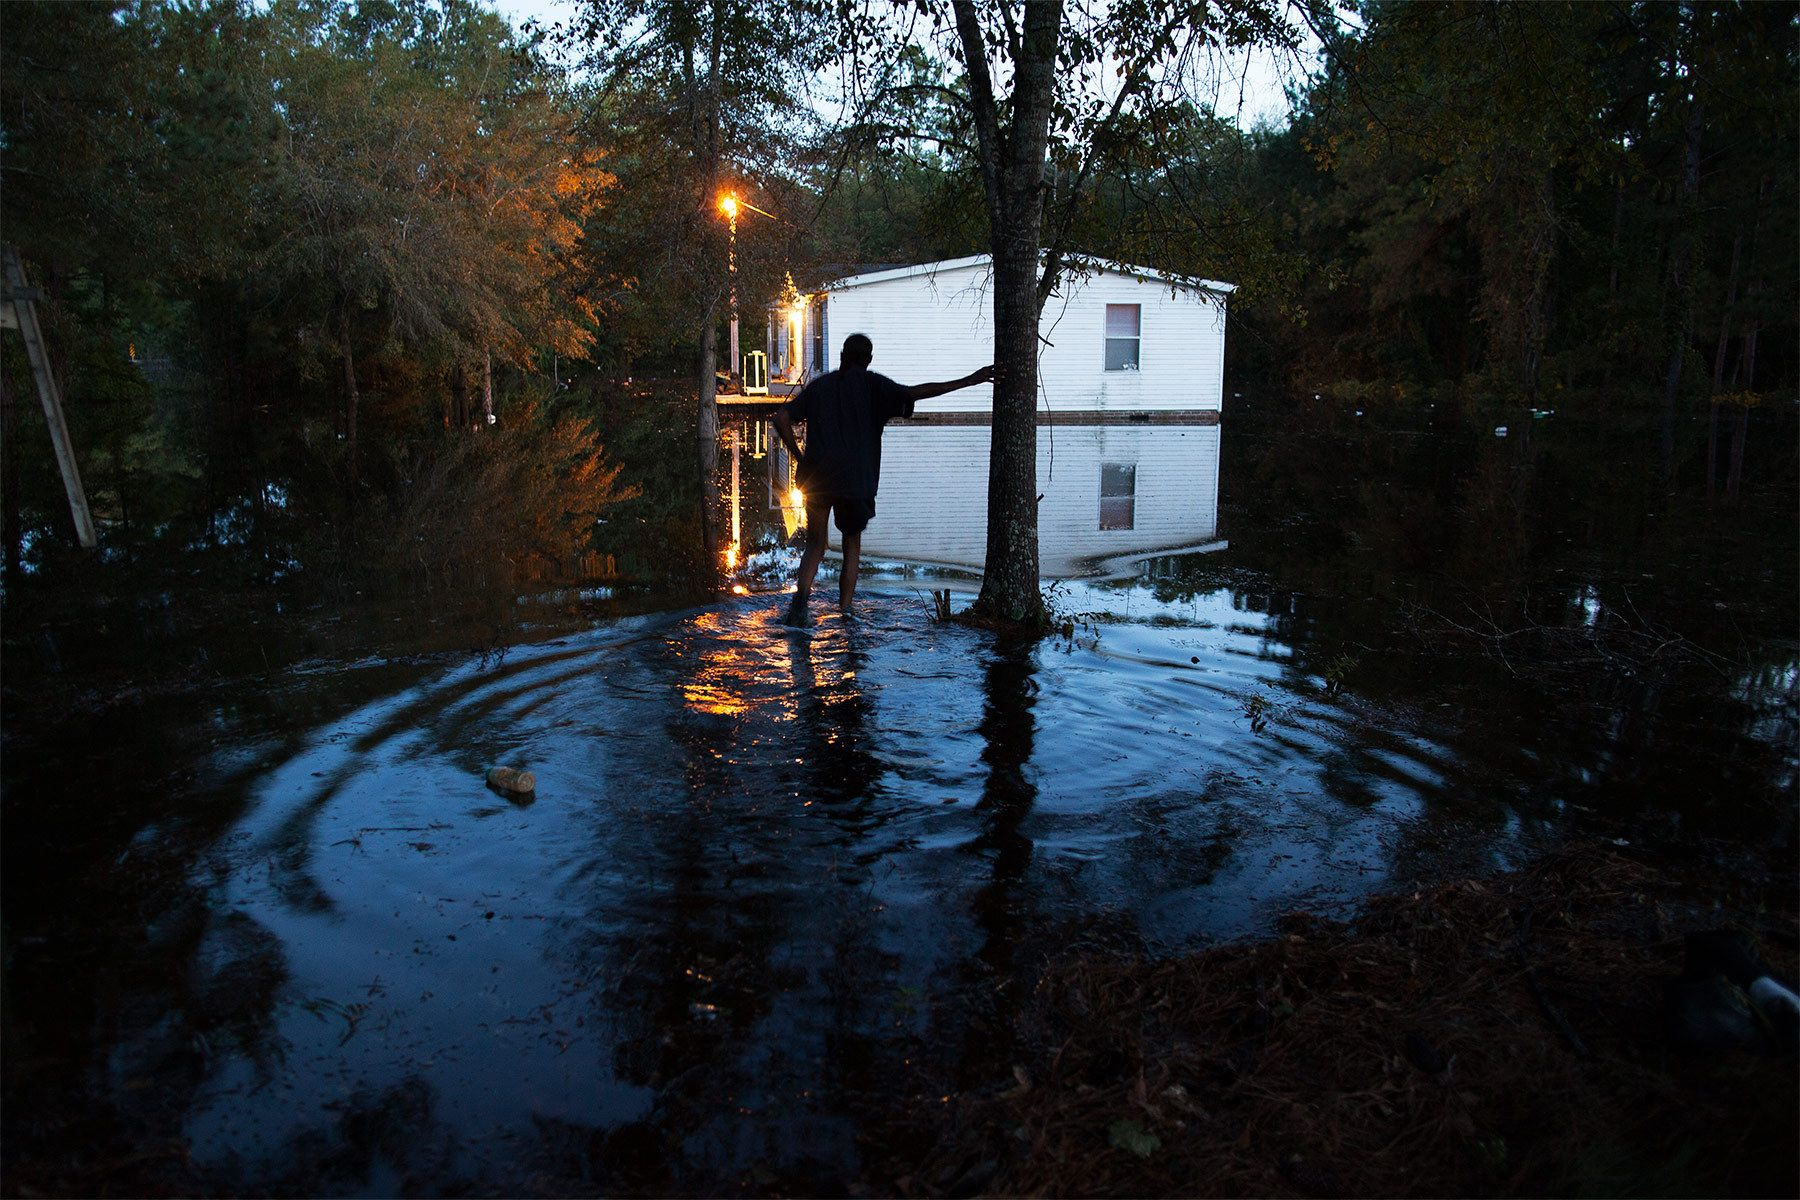 Lewis Johnson makes his way to help a neighbor remove valuables from a flooded home on Frank Williams Road in Georgetown, South Carolina October 8, 2015. South Carolina's governor warned on Thursday that several coastal areas were about to be hit by a second round of major flooding, while residents inland hauled soaked furniture and appliances from homes left in ruins by unprecedented rainfall.  REUTERS/Randall Hill